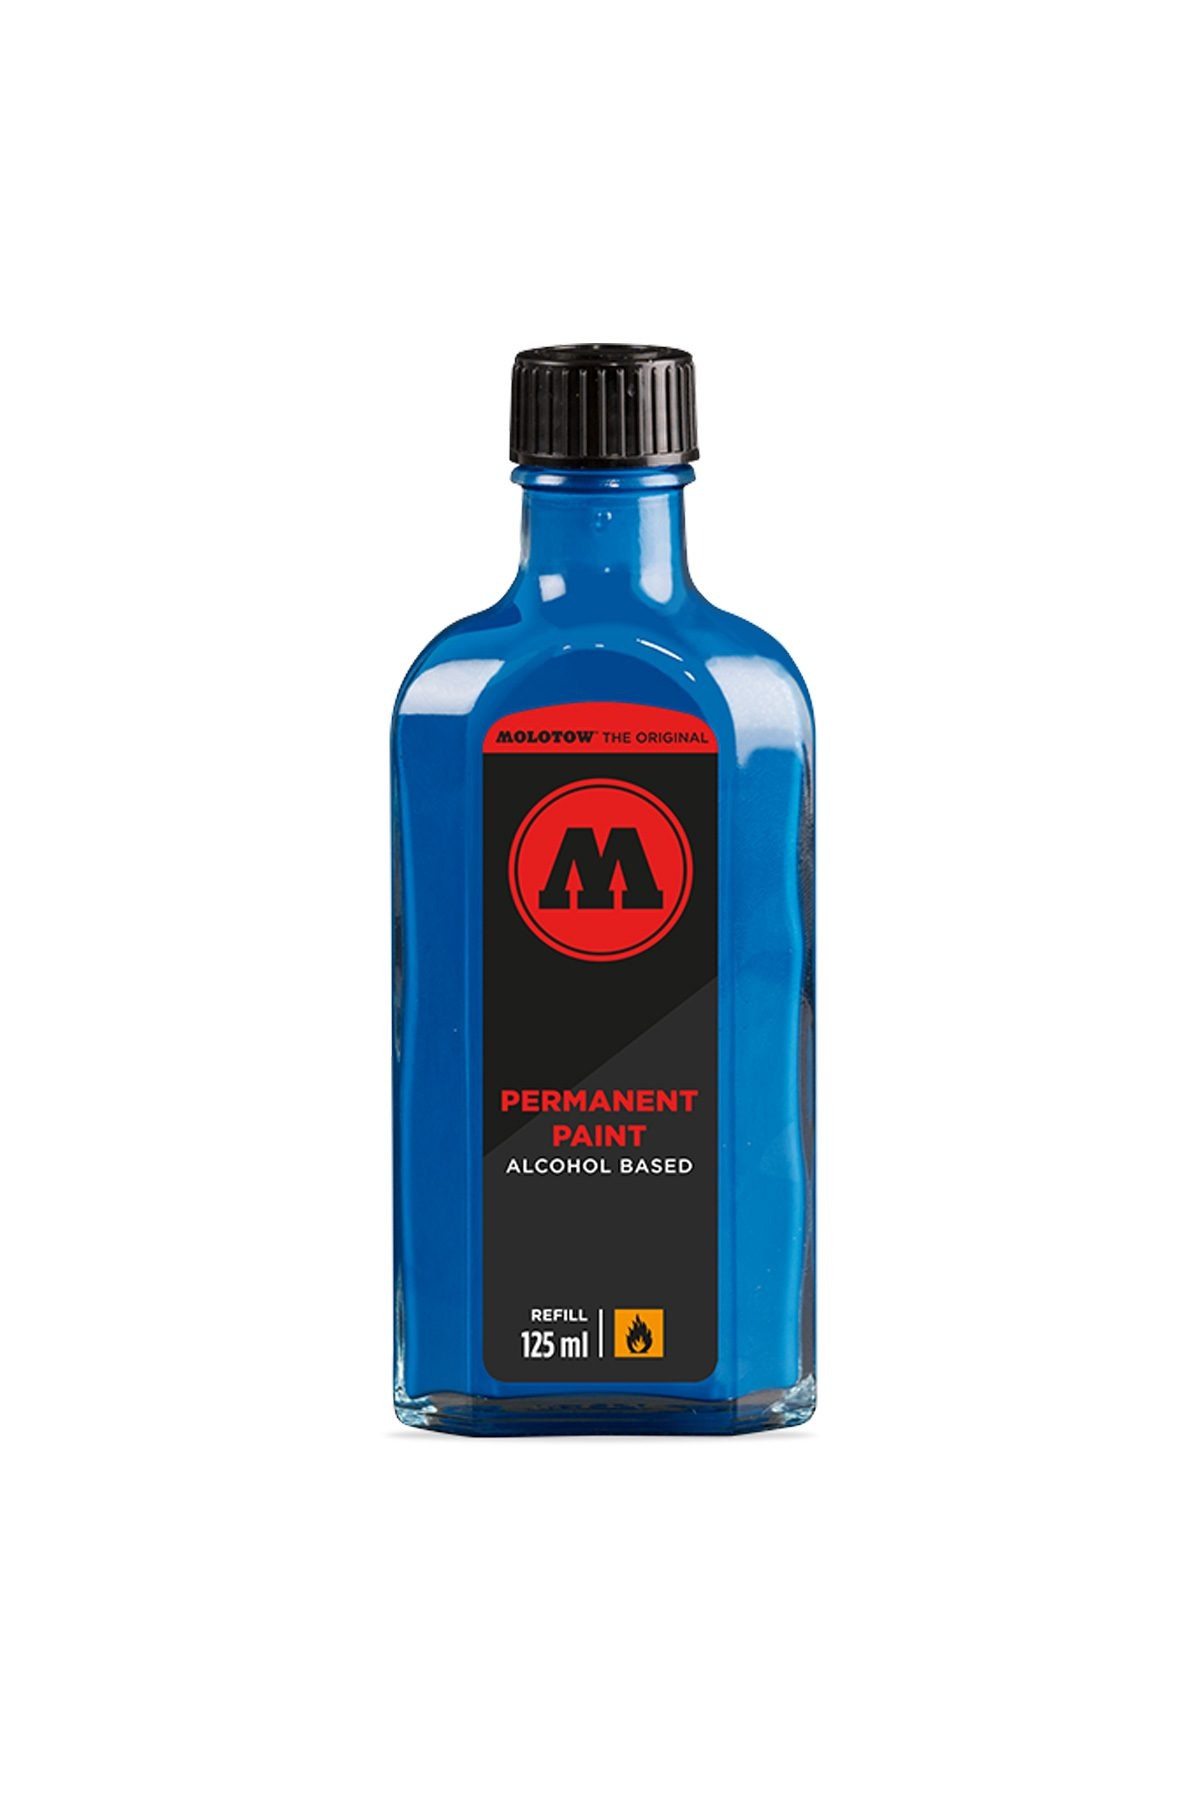 Molotow PERMANENT PAINT Refill 125ml